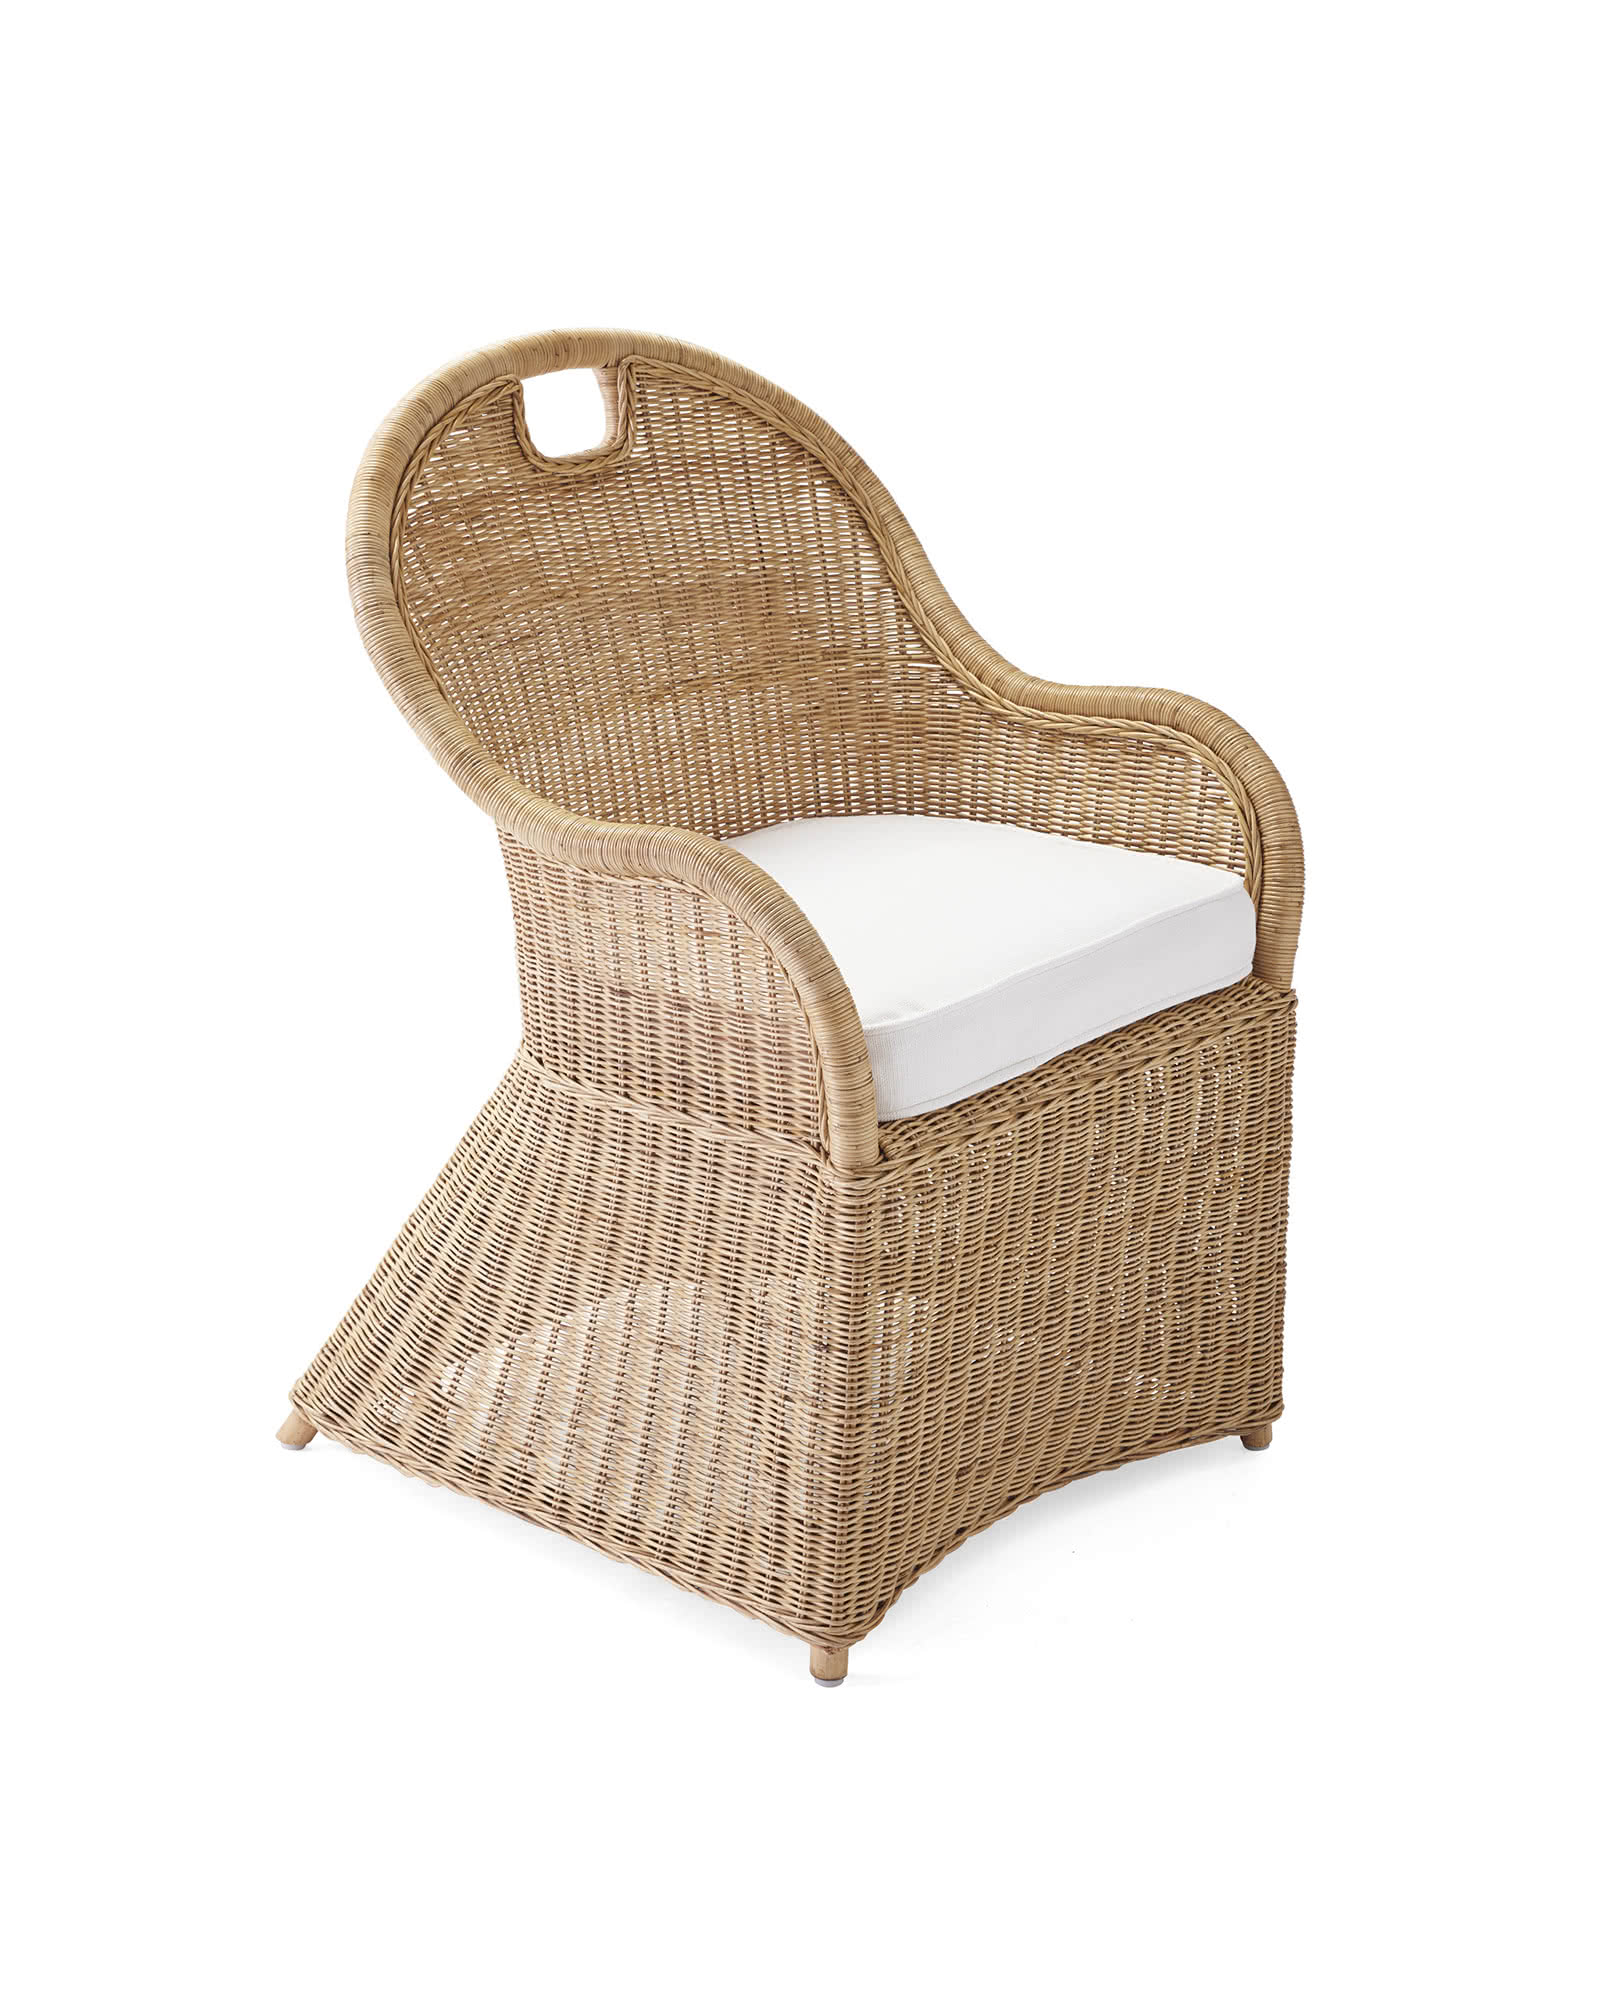 Furn_Rattan_Dining_Chair_Perennials_Basketweave_White_Angle_MV_Crop_SH